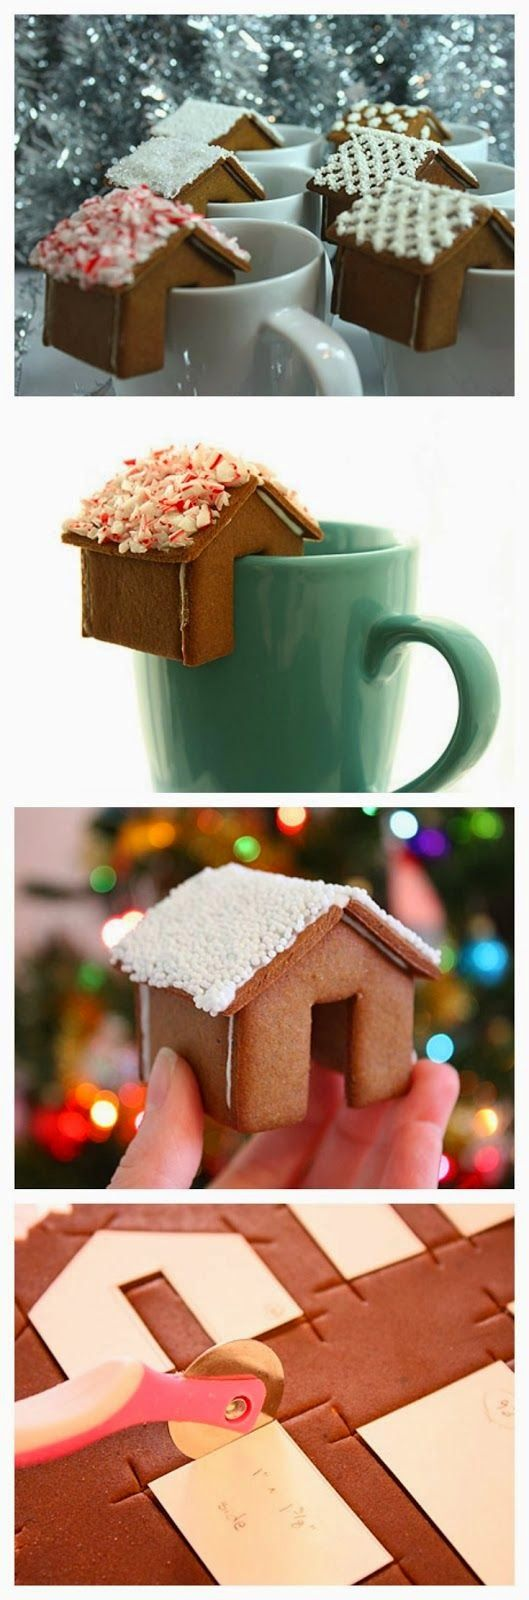 Gingerbread houses that perch on your mug!